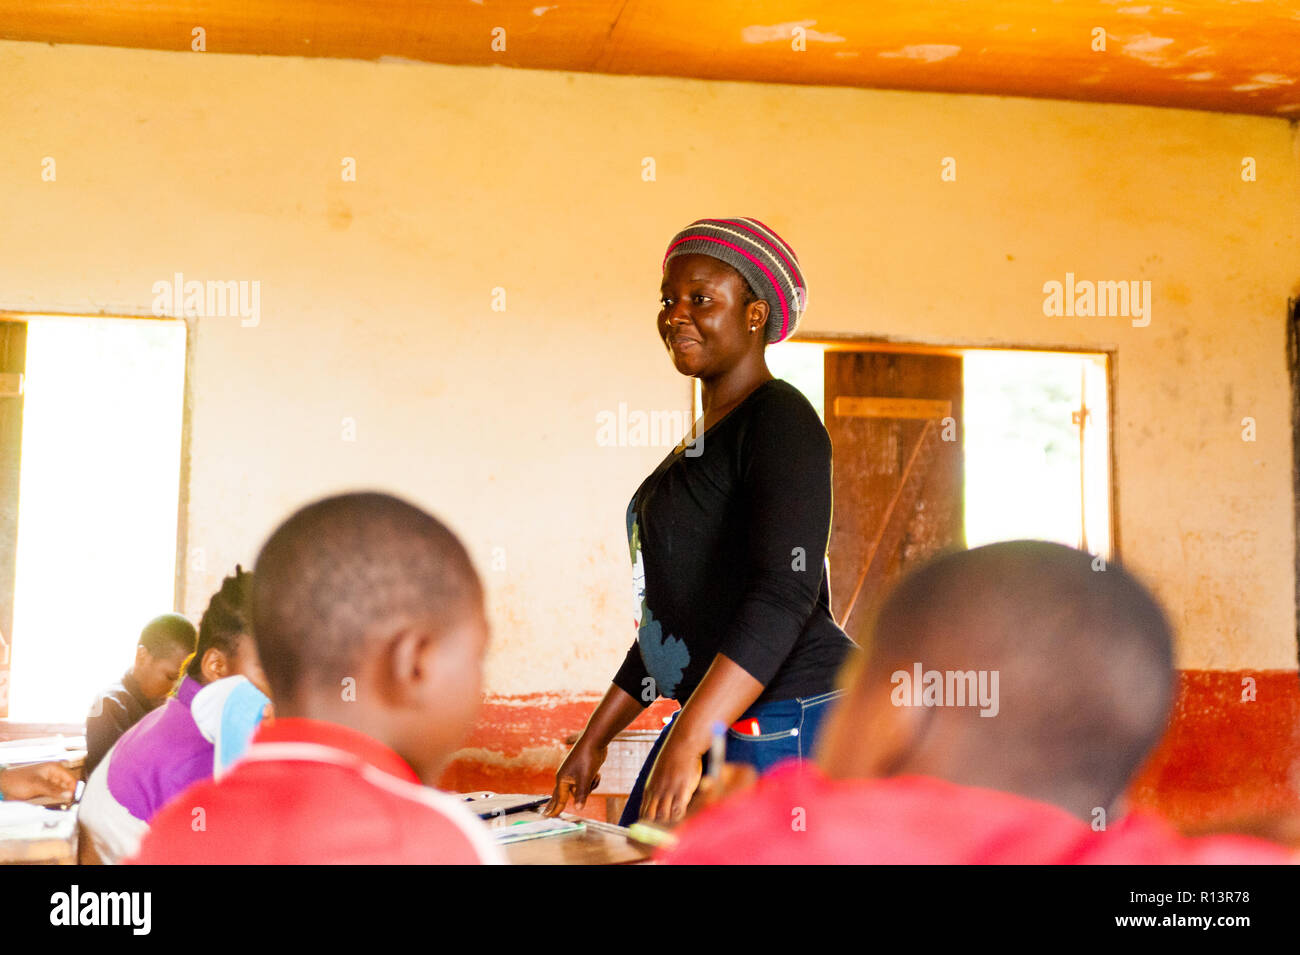 Bafoussam, Cameroon - 06 august 2018: young african girl teacher volunteer smiling during lessonstanding up among children Stock Photo